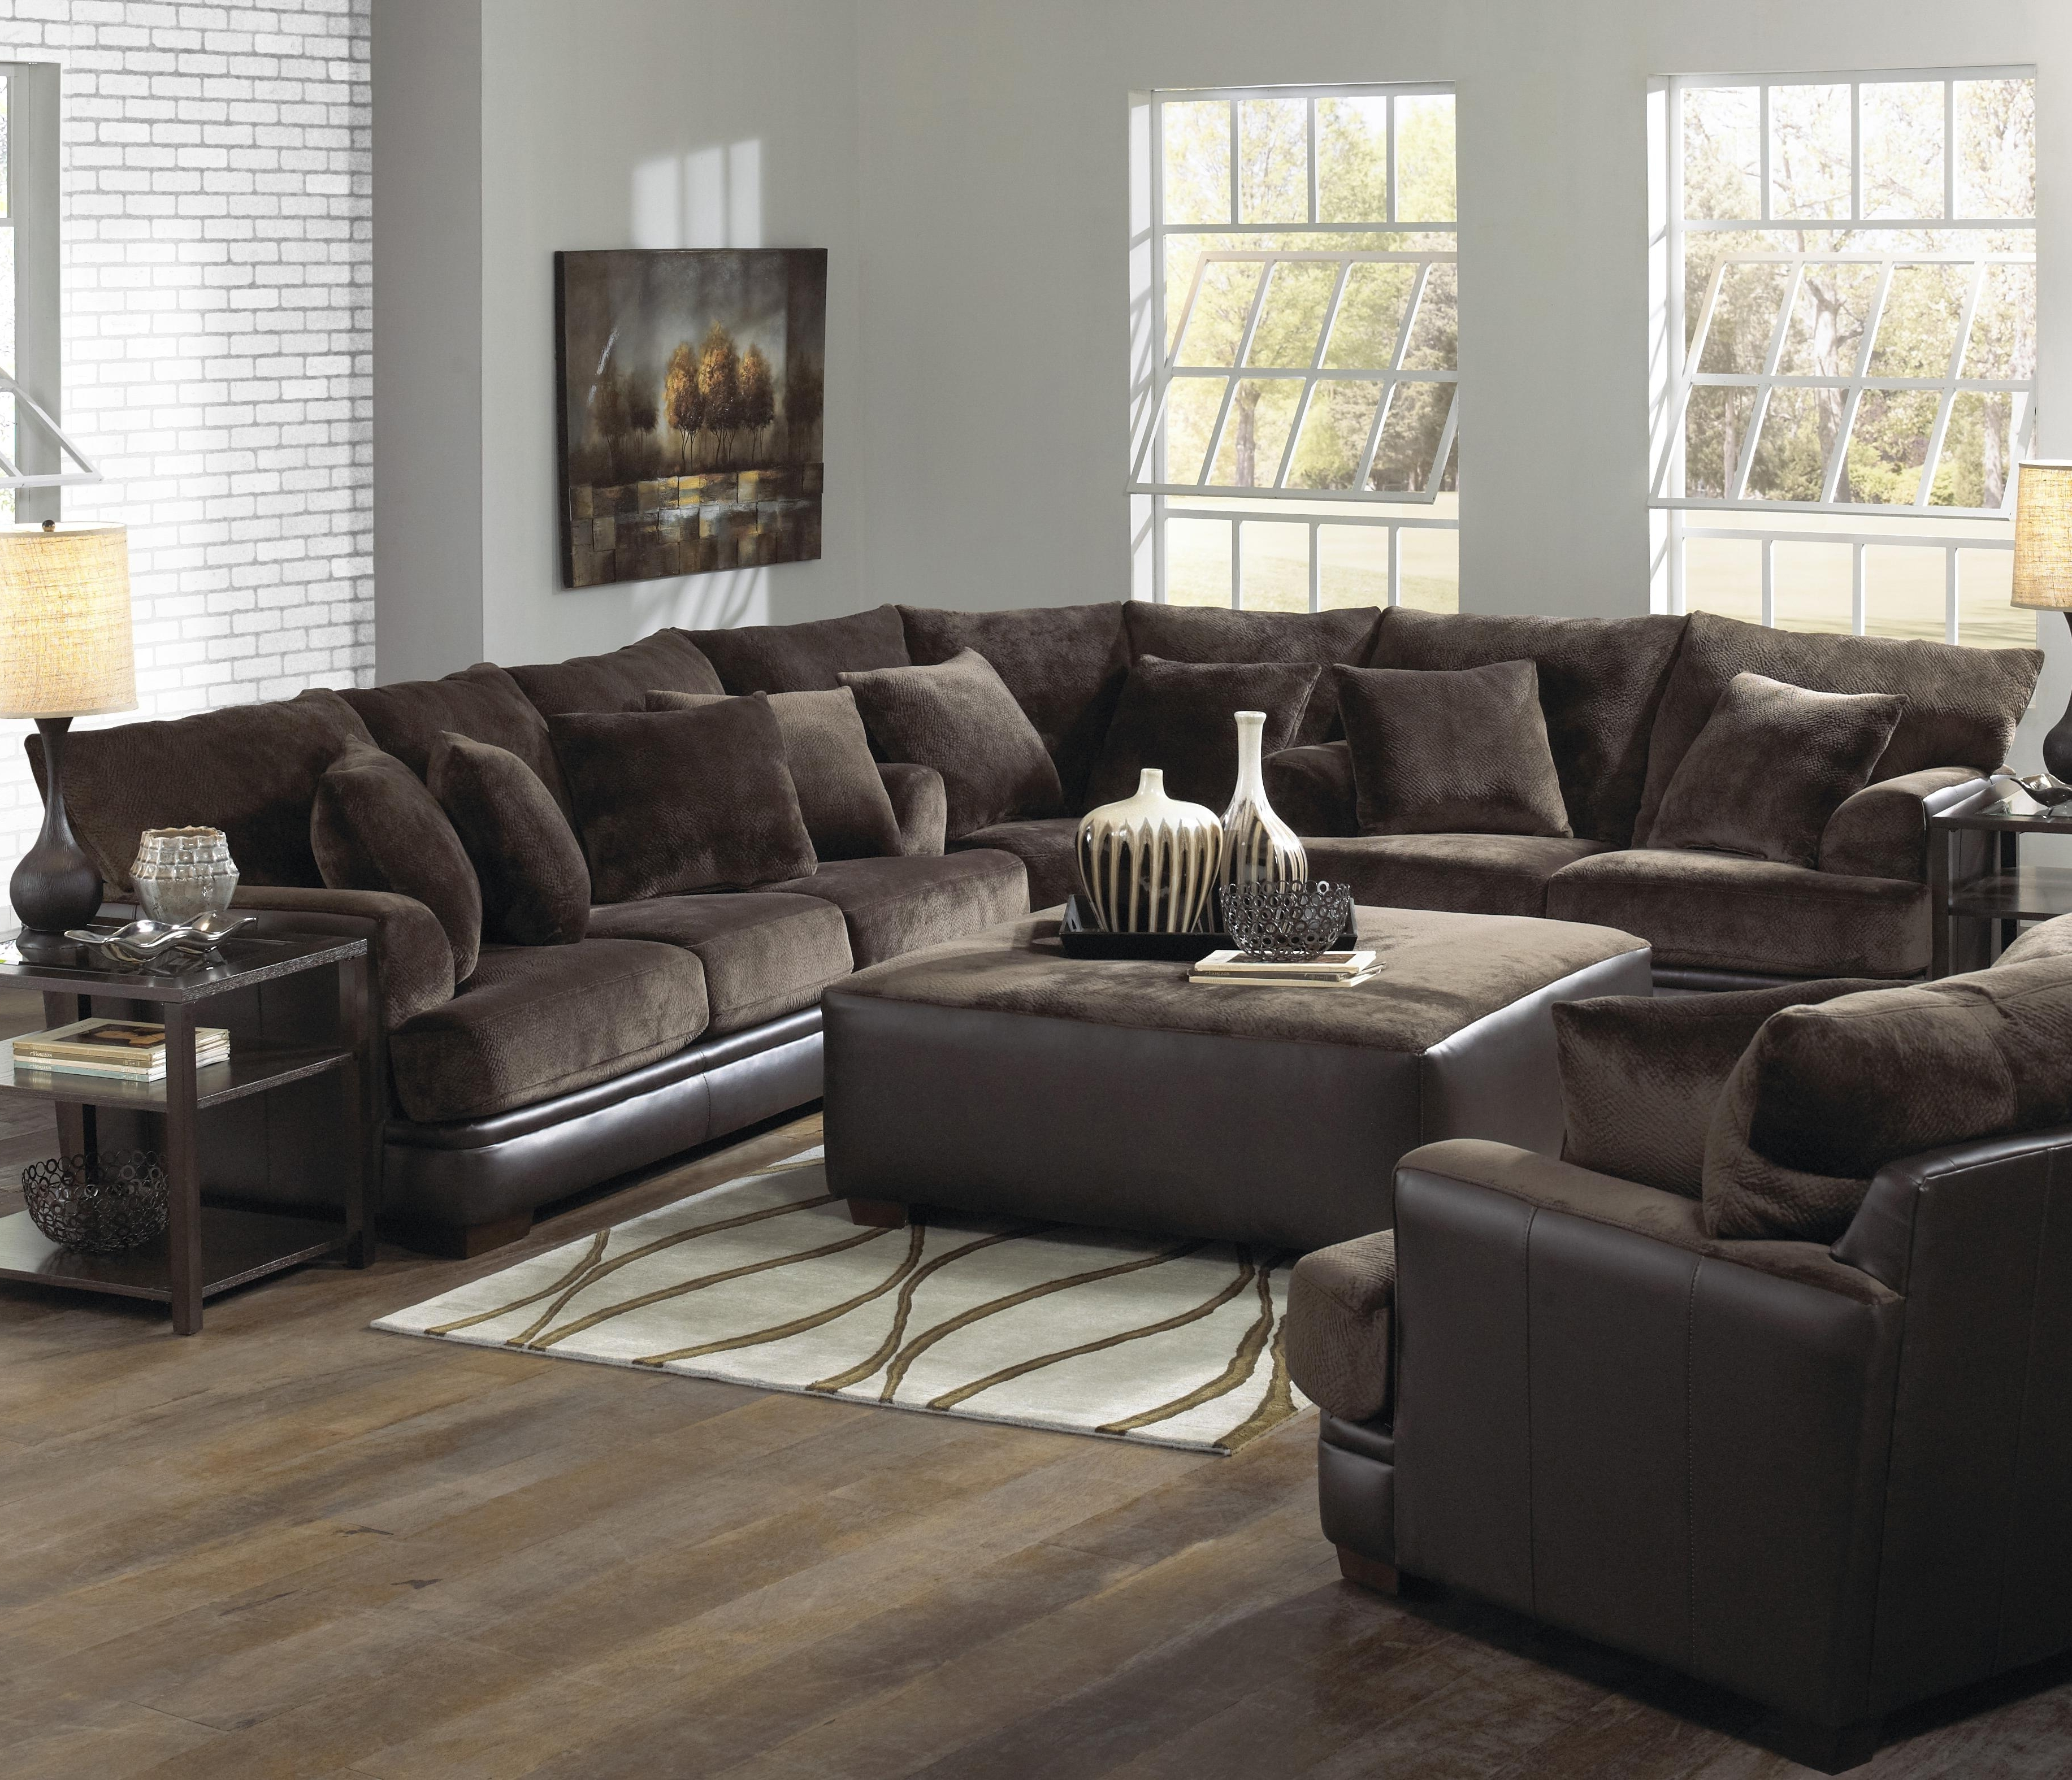 Favorite Furniture: Interesting Living Room Interior Using Large Sectional With Extra Large U Shaped Sectionals (View 10 of 15)